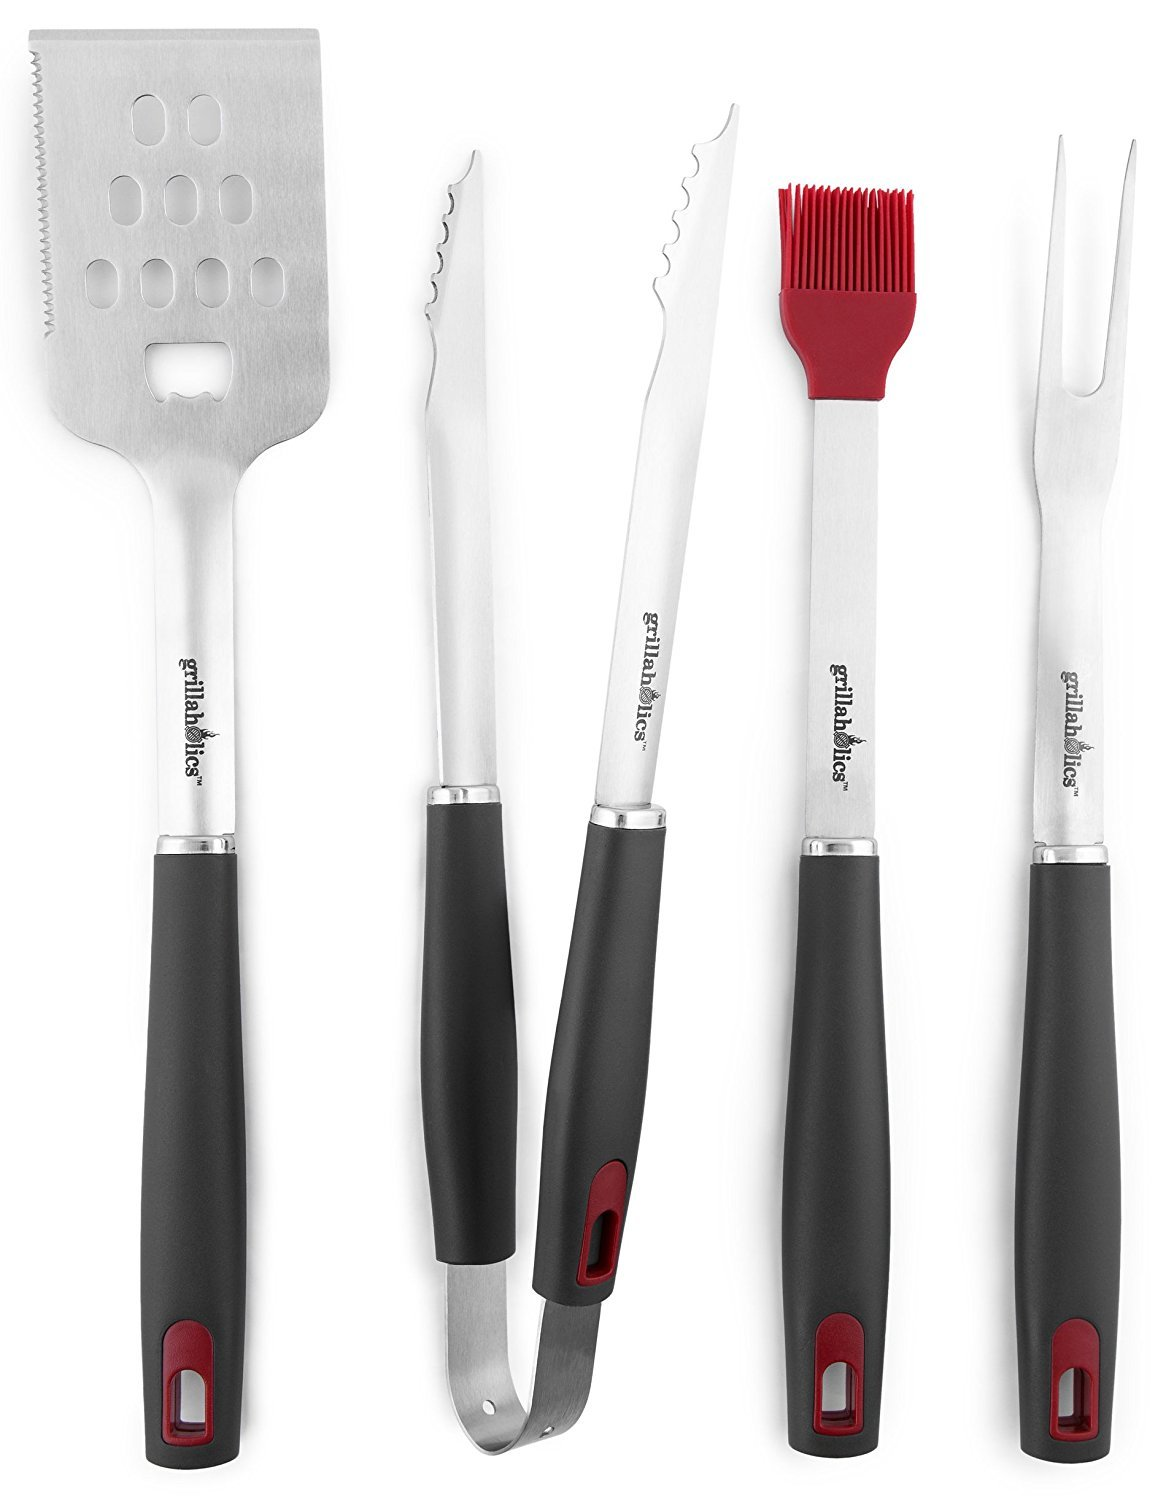 Grillaholics BBQ Grill Tools Set - 4-Piece Heavy Duty Stainless Steel Barbecue Grilling Utensils - Premium Grill Accessories for Barbecue - Spatula, Tongs, Fork, and Basting Brush by Grillaholics